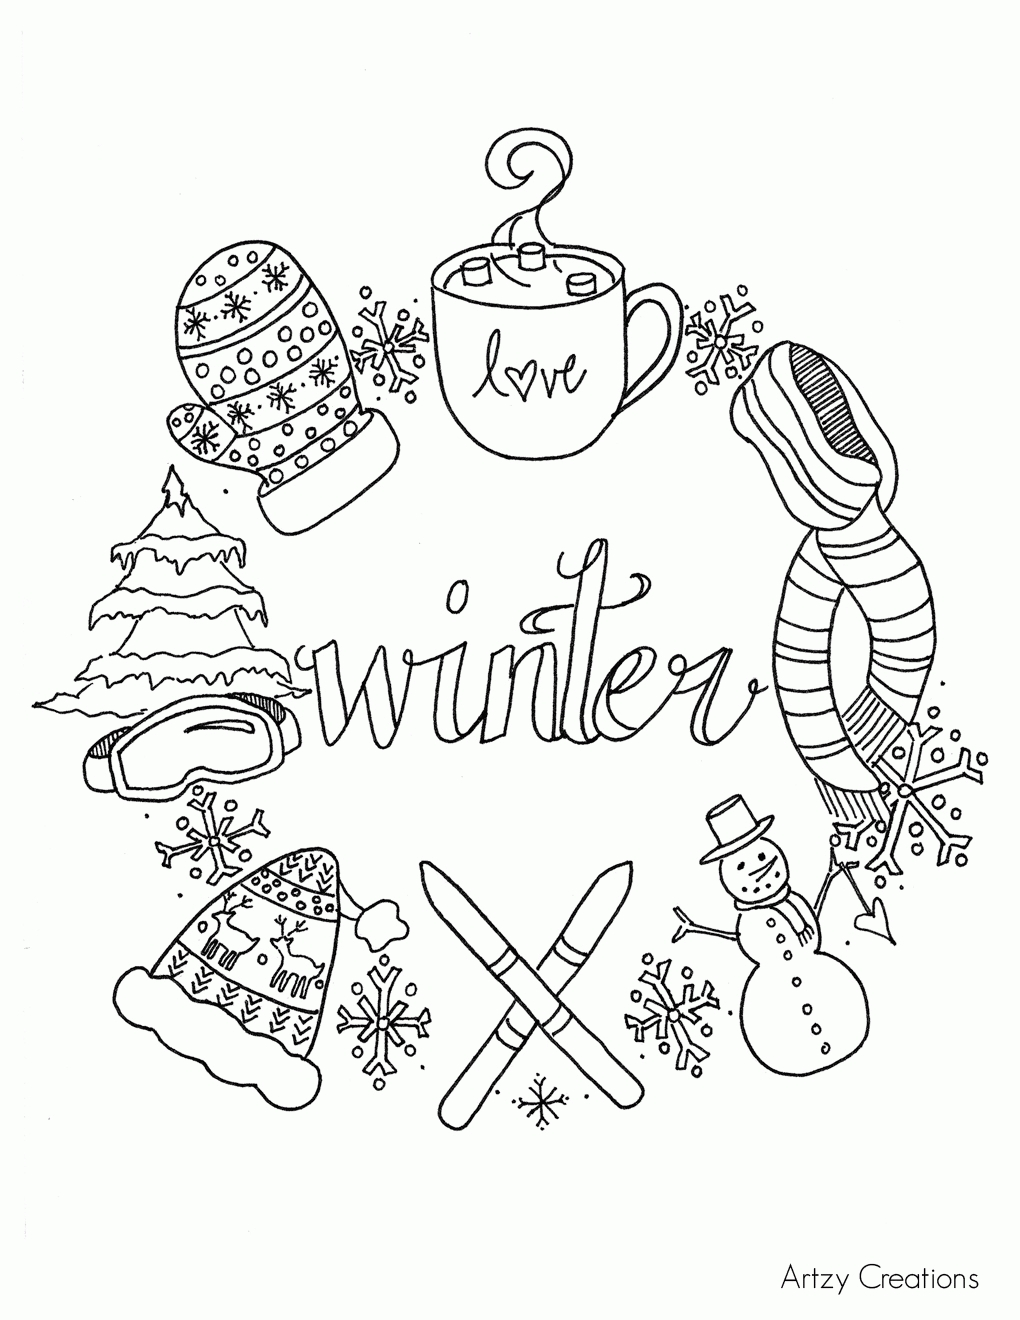 21 Free Printable Winter Coloring Pages Pictures | FREE COLORING ...